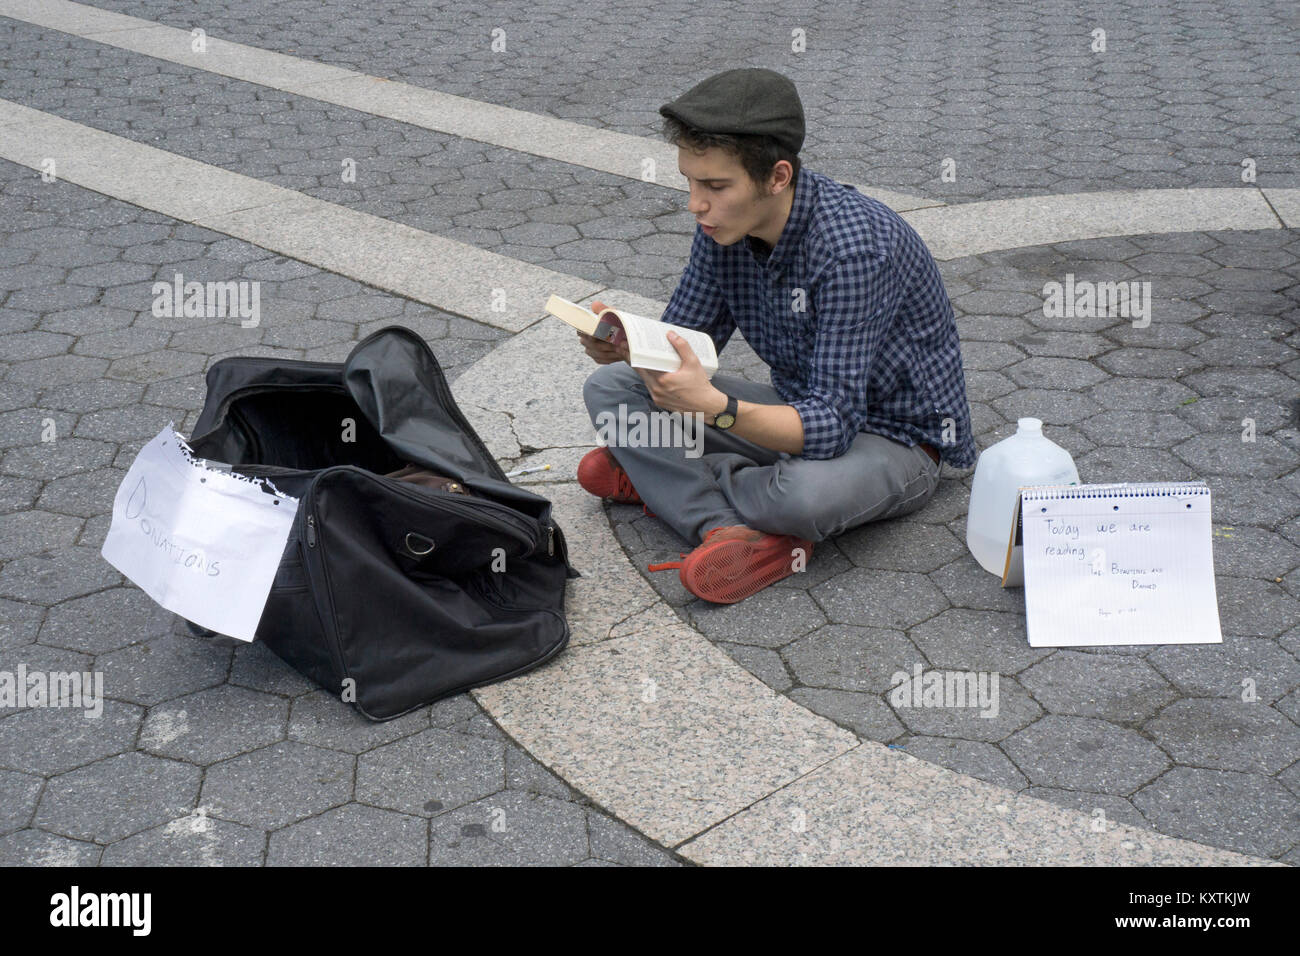 A young man soliciting donations by reading aloud from F. Scott Fitzgerald's novel The Beautiful and the Damned. - Stock Image